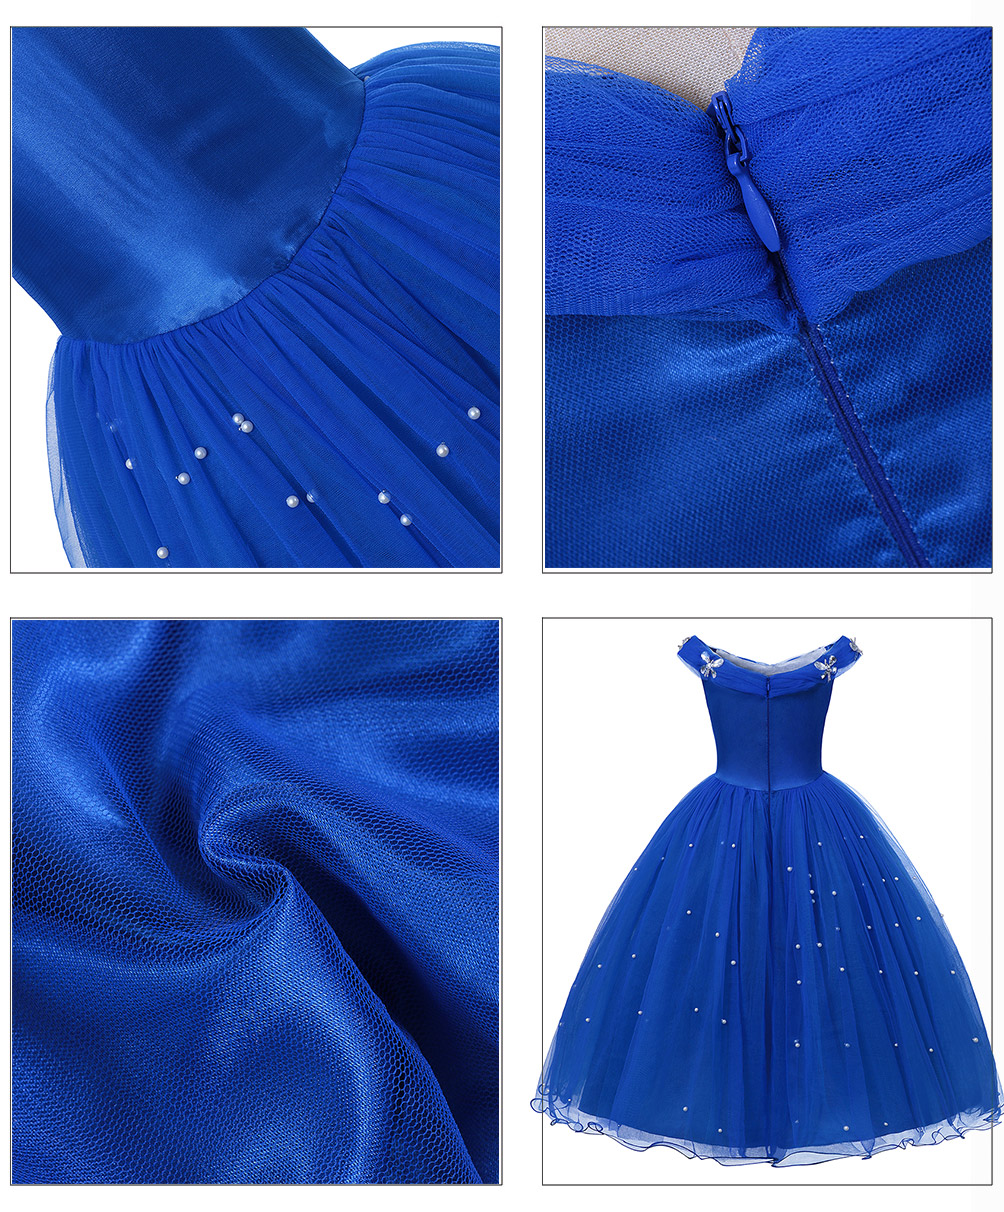 H57f3769511fb455c998424ab79f5189fB - Fancy Baby Girl Princess Clothes Kid Jasmine Rapunzel Aurora Belle Ariel Cosplay Costume Child Elsa Anna Elena Sofia Party Dress